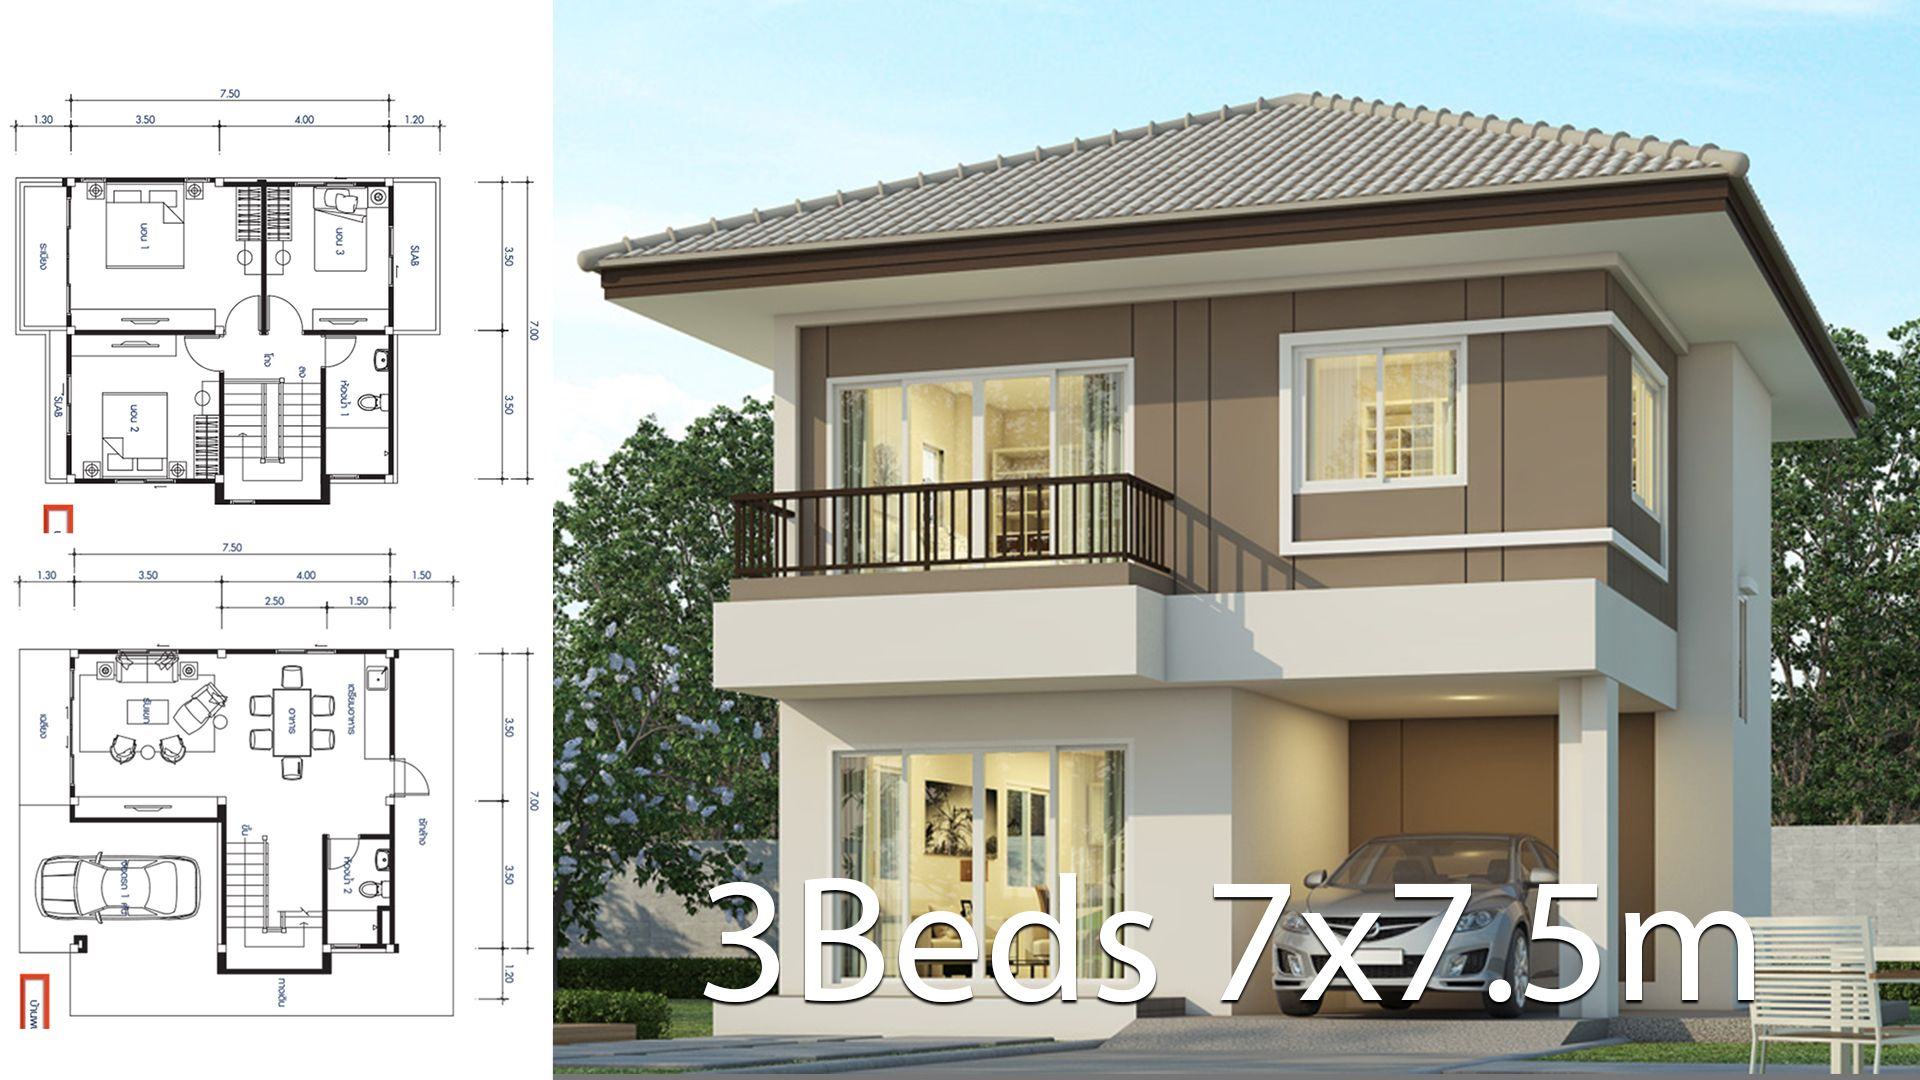 House Design Plan 7x7 5m With 3 Bedrooms House Plan Map Simple Bungalow House Designs 2 Storey House Design Home Design Plans